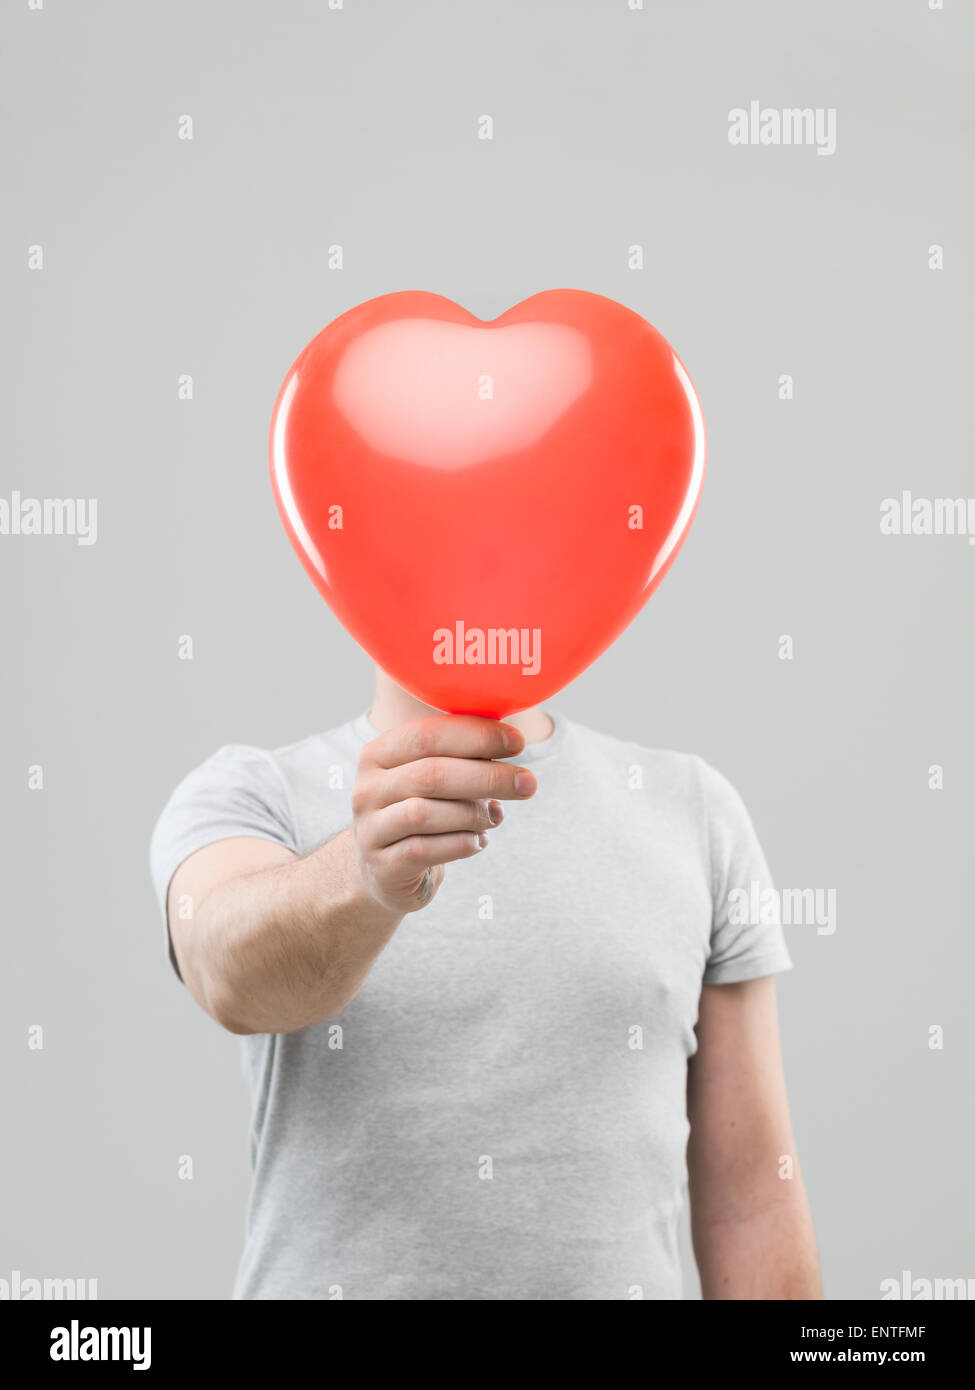 caucasian man holding heart shaped ballon in front of his head, against grey background - Stock Image